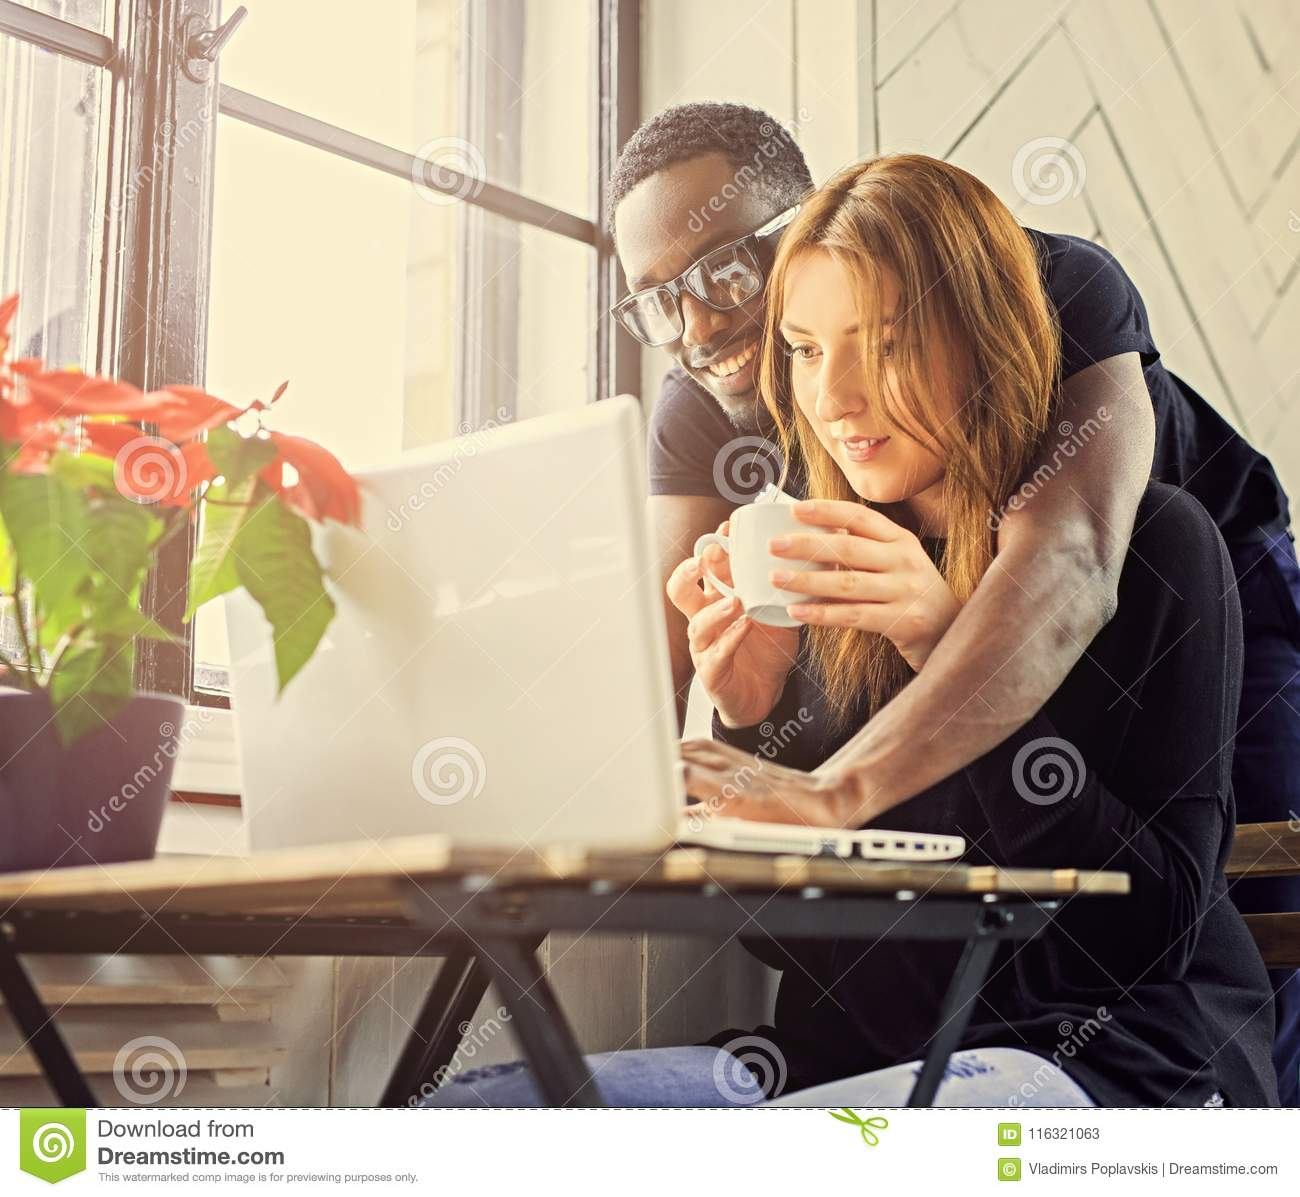 Male and female student using a laptop.